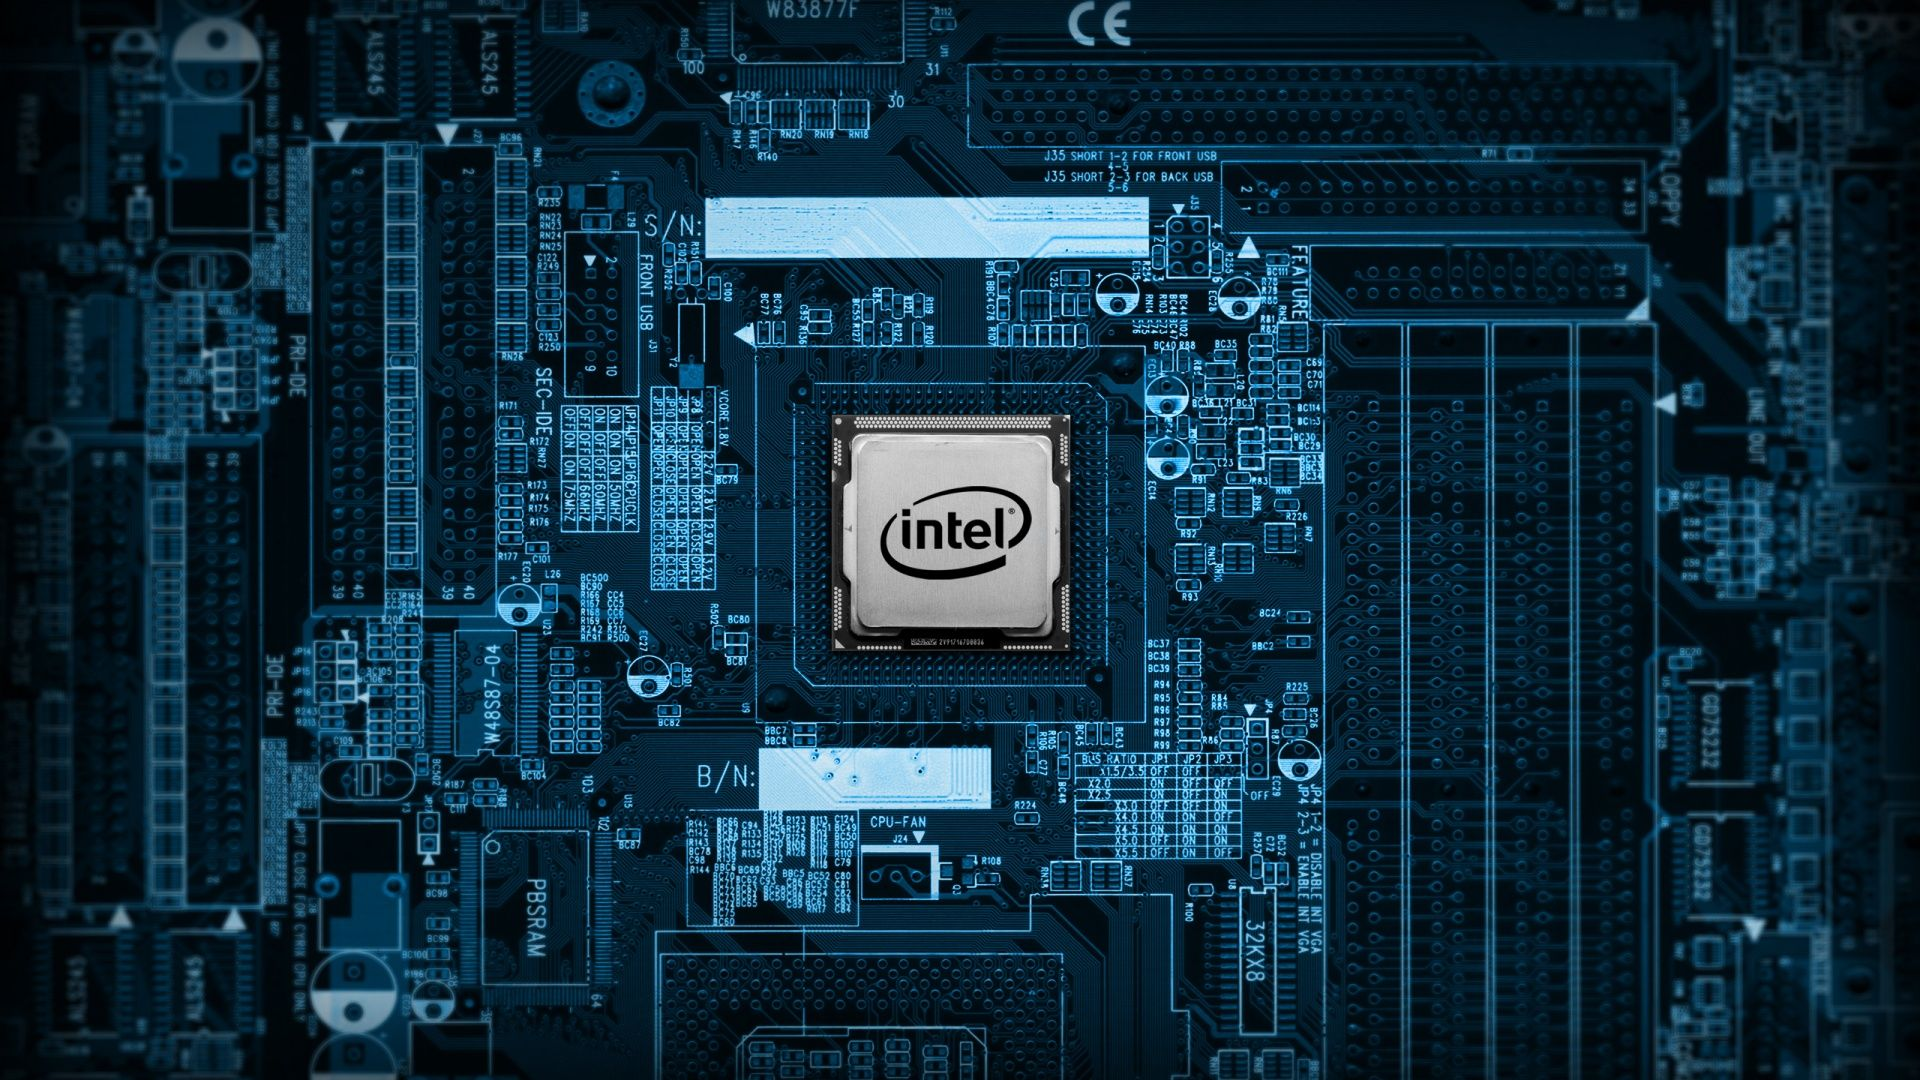 Processor phenom amd wallpaper animated background computers picture - Computer Backgrounds